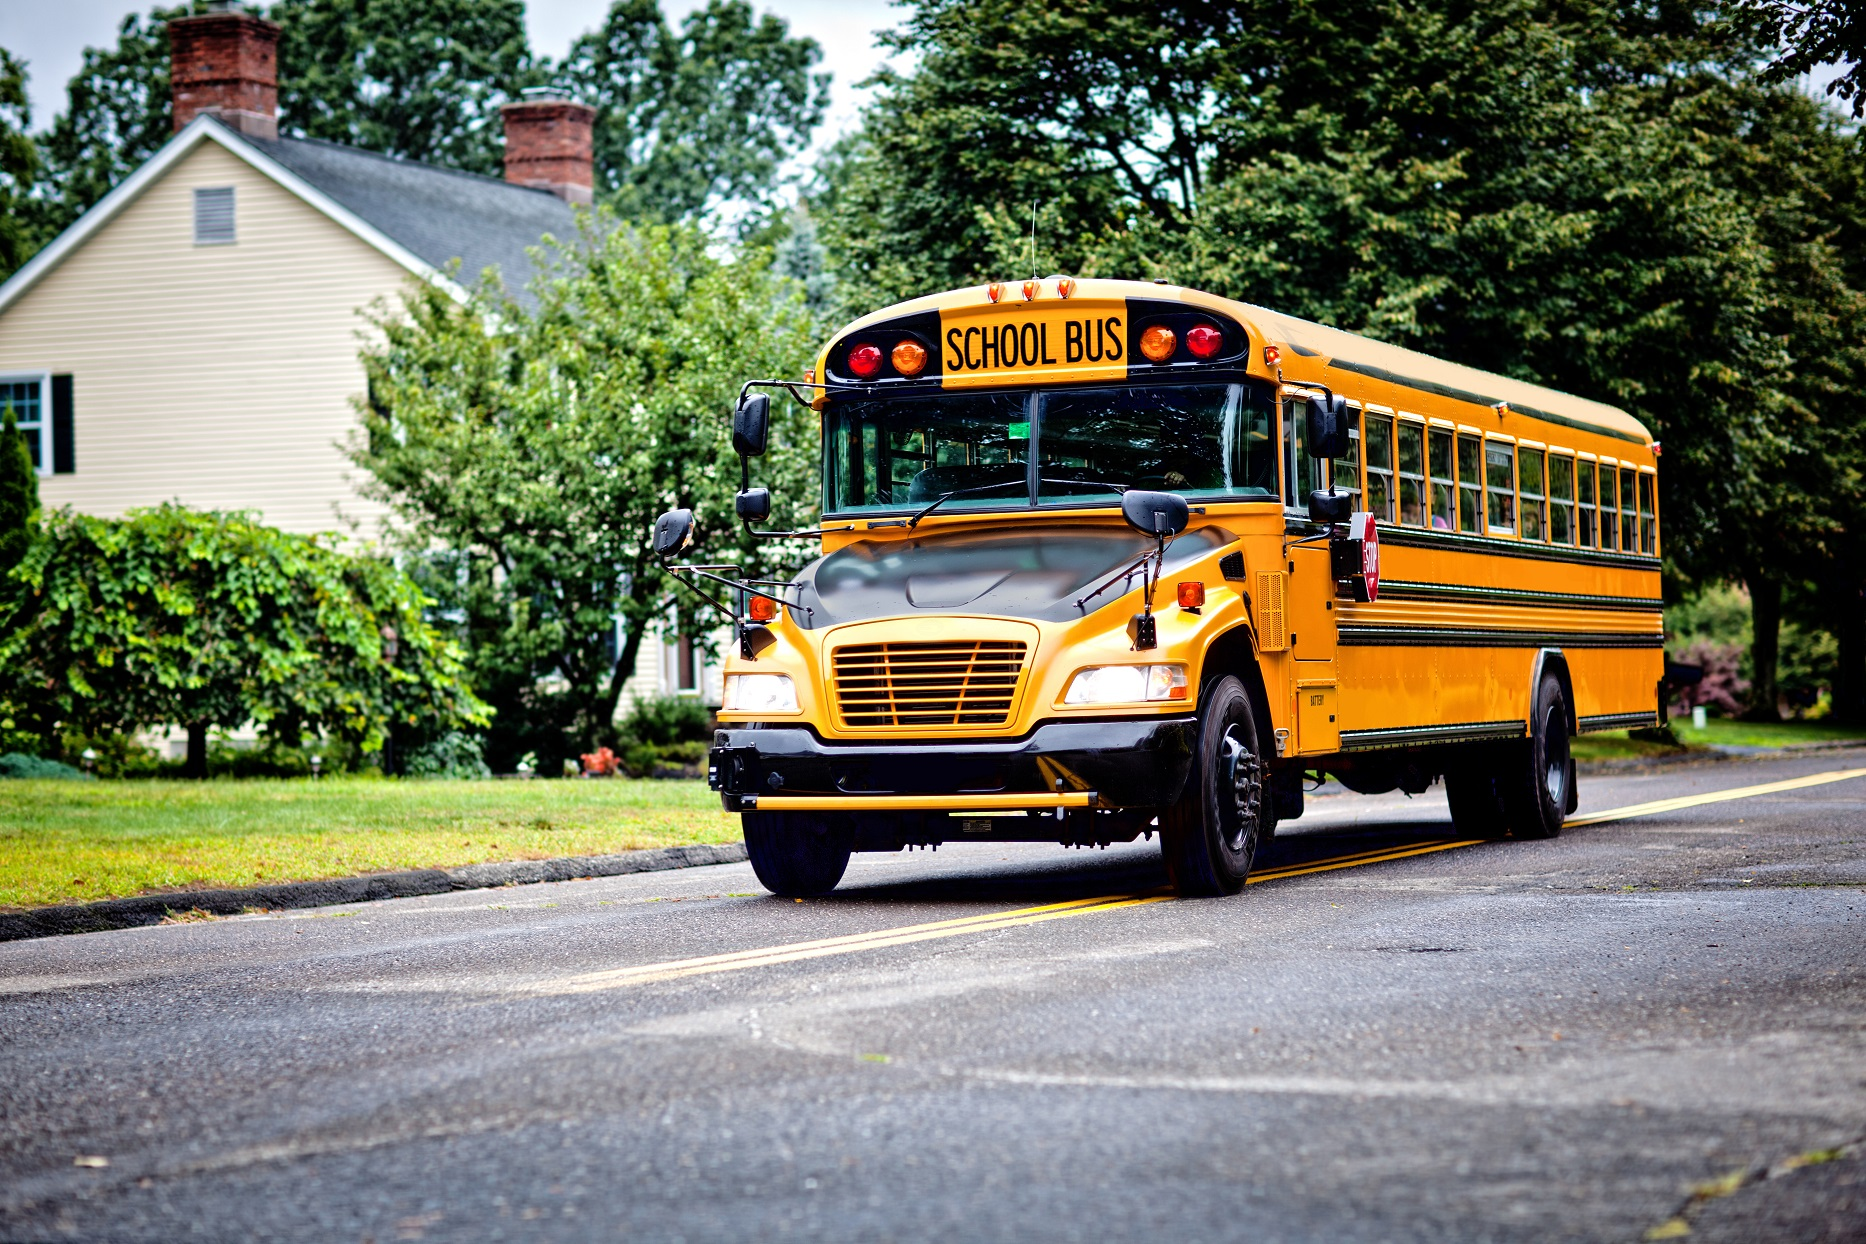 School Bus Driving on Street